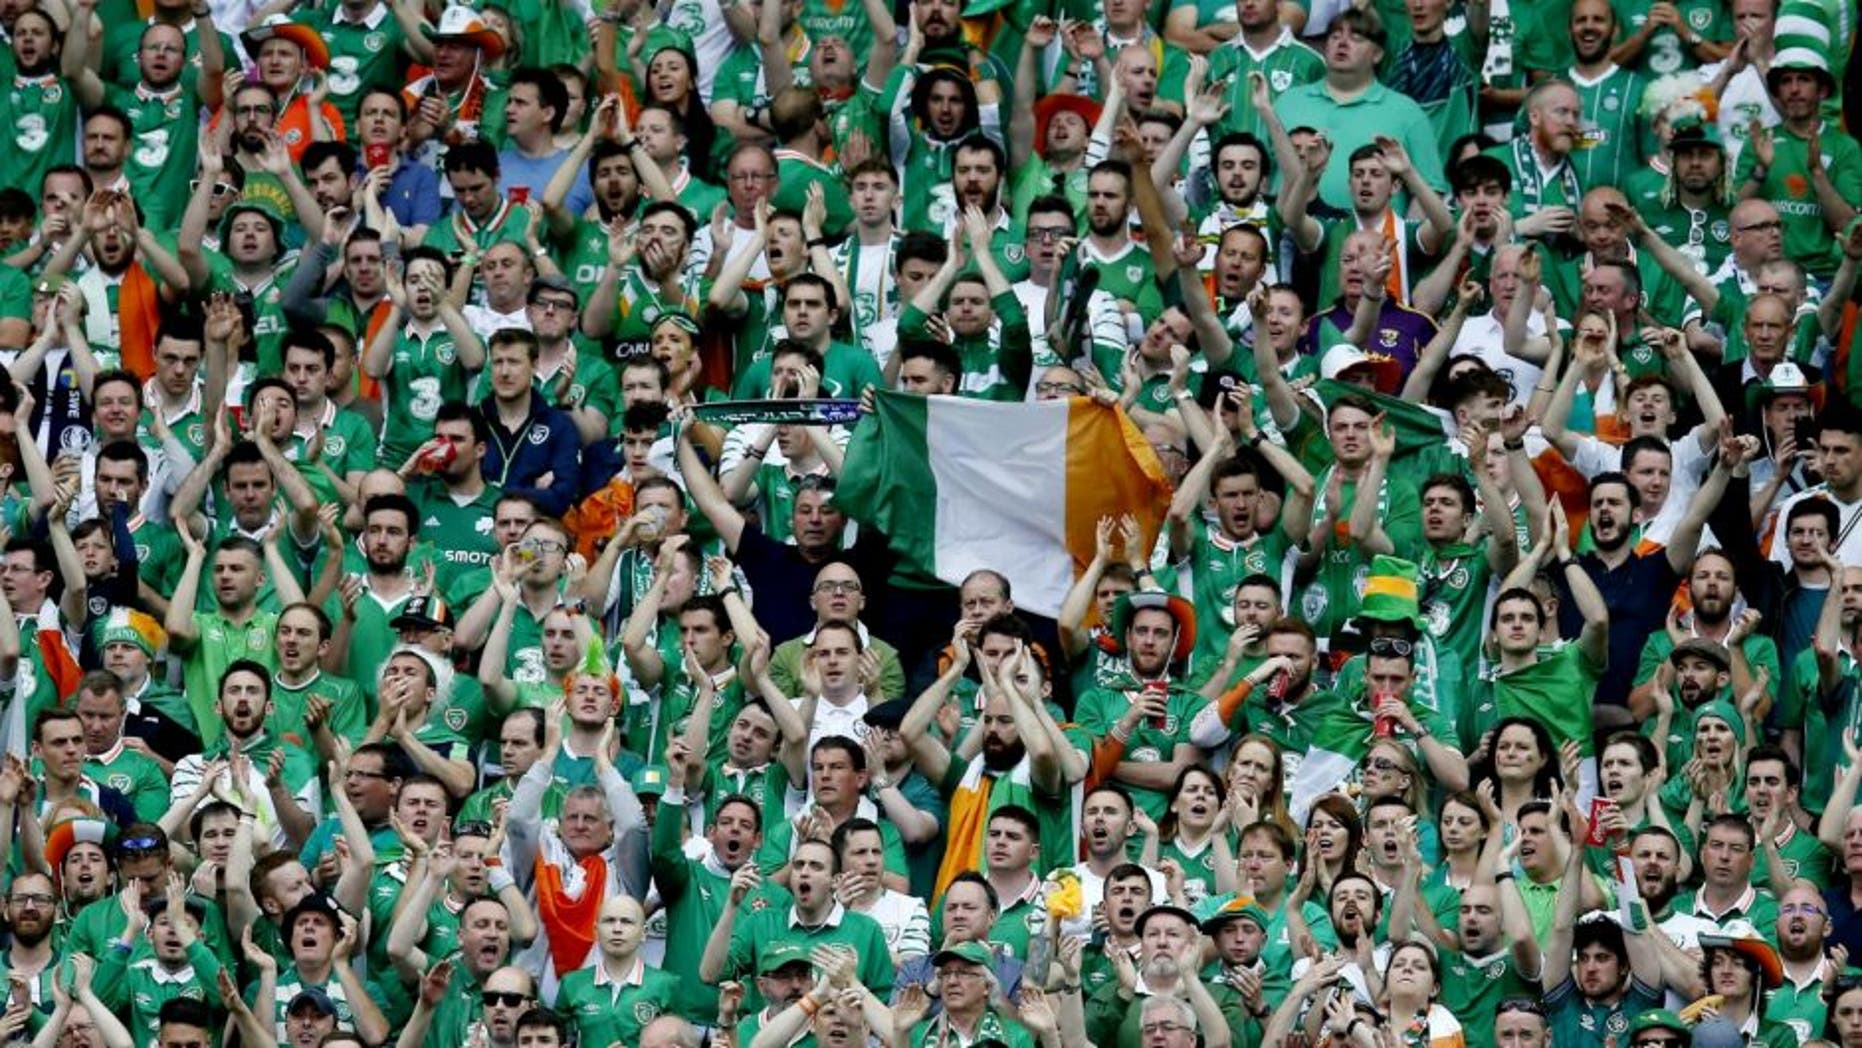 fans of Ireland during the UEFA EURO 2016 Group E group stage match between Republic of Ireland and Sweden at the Stade de France on june 13, 2016 in Paris, France.(Photo by VI Images via Getty Images)